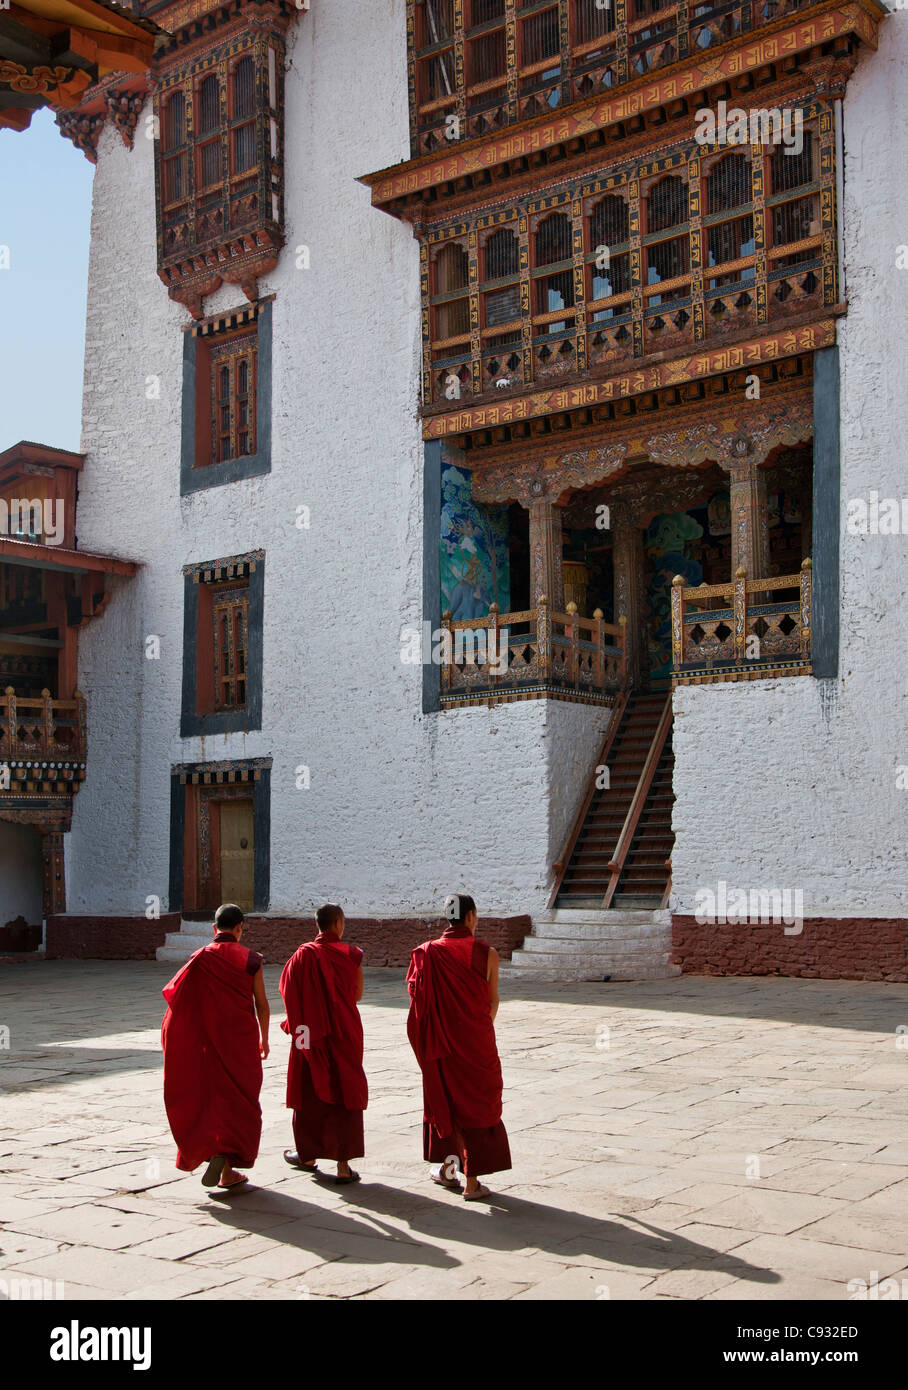 Three monks cross a courtyard in the Punakha Dzong, is the second oldest and largest dzong in Bhutan. - Stock Image